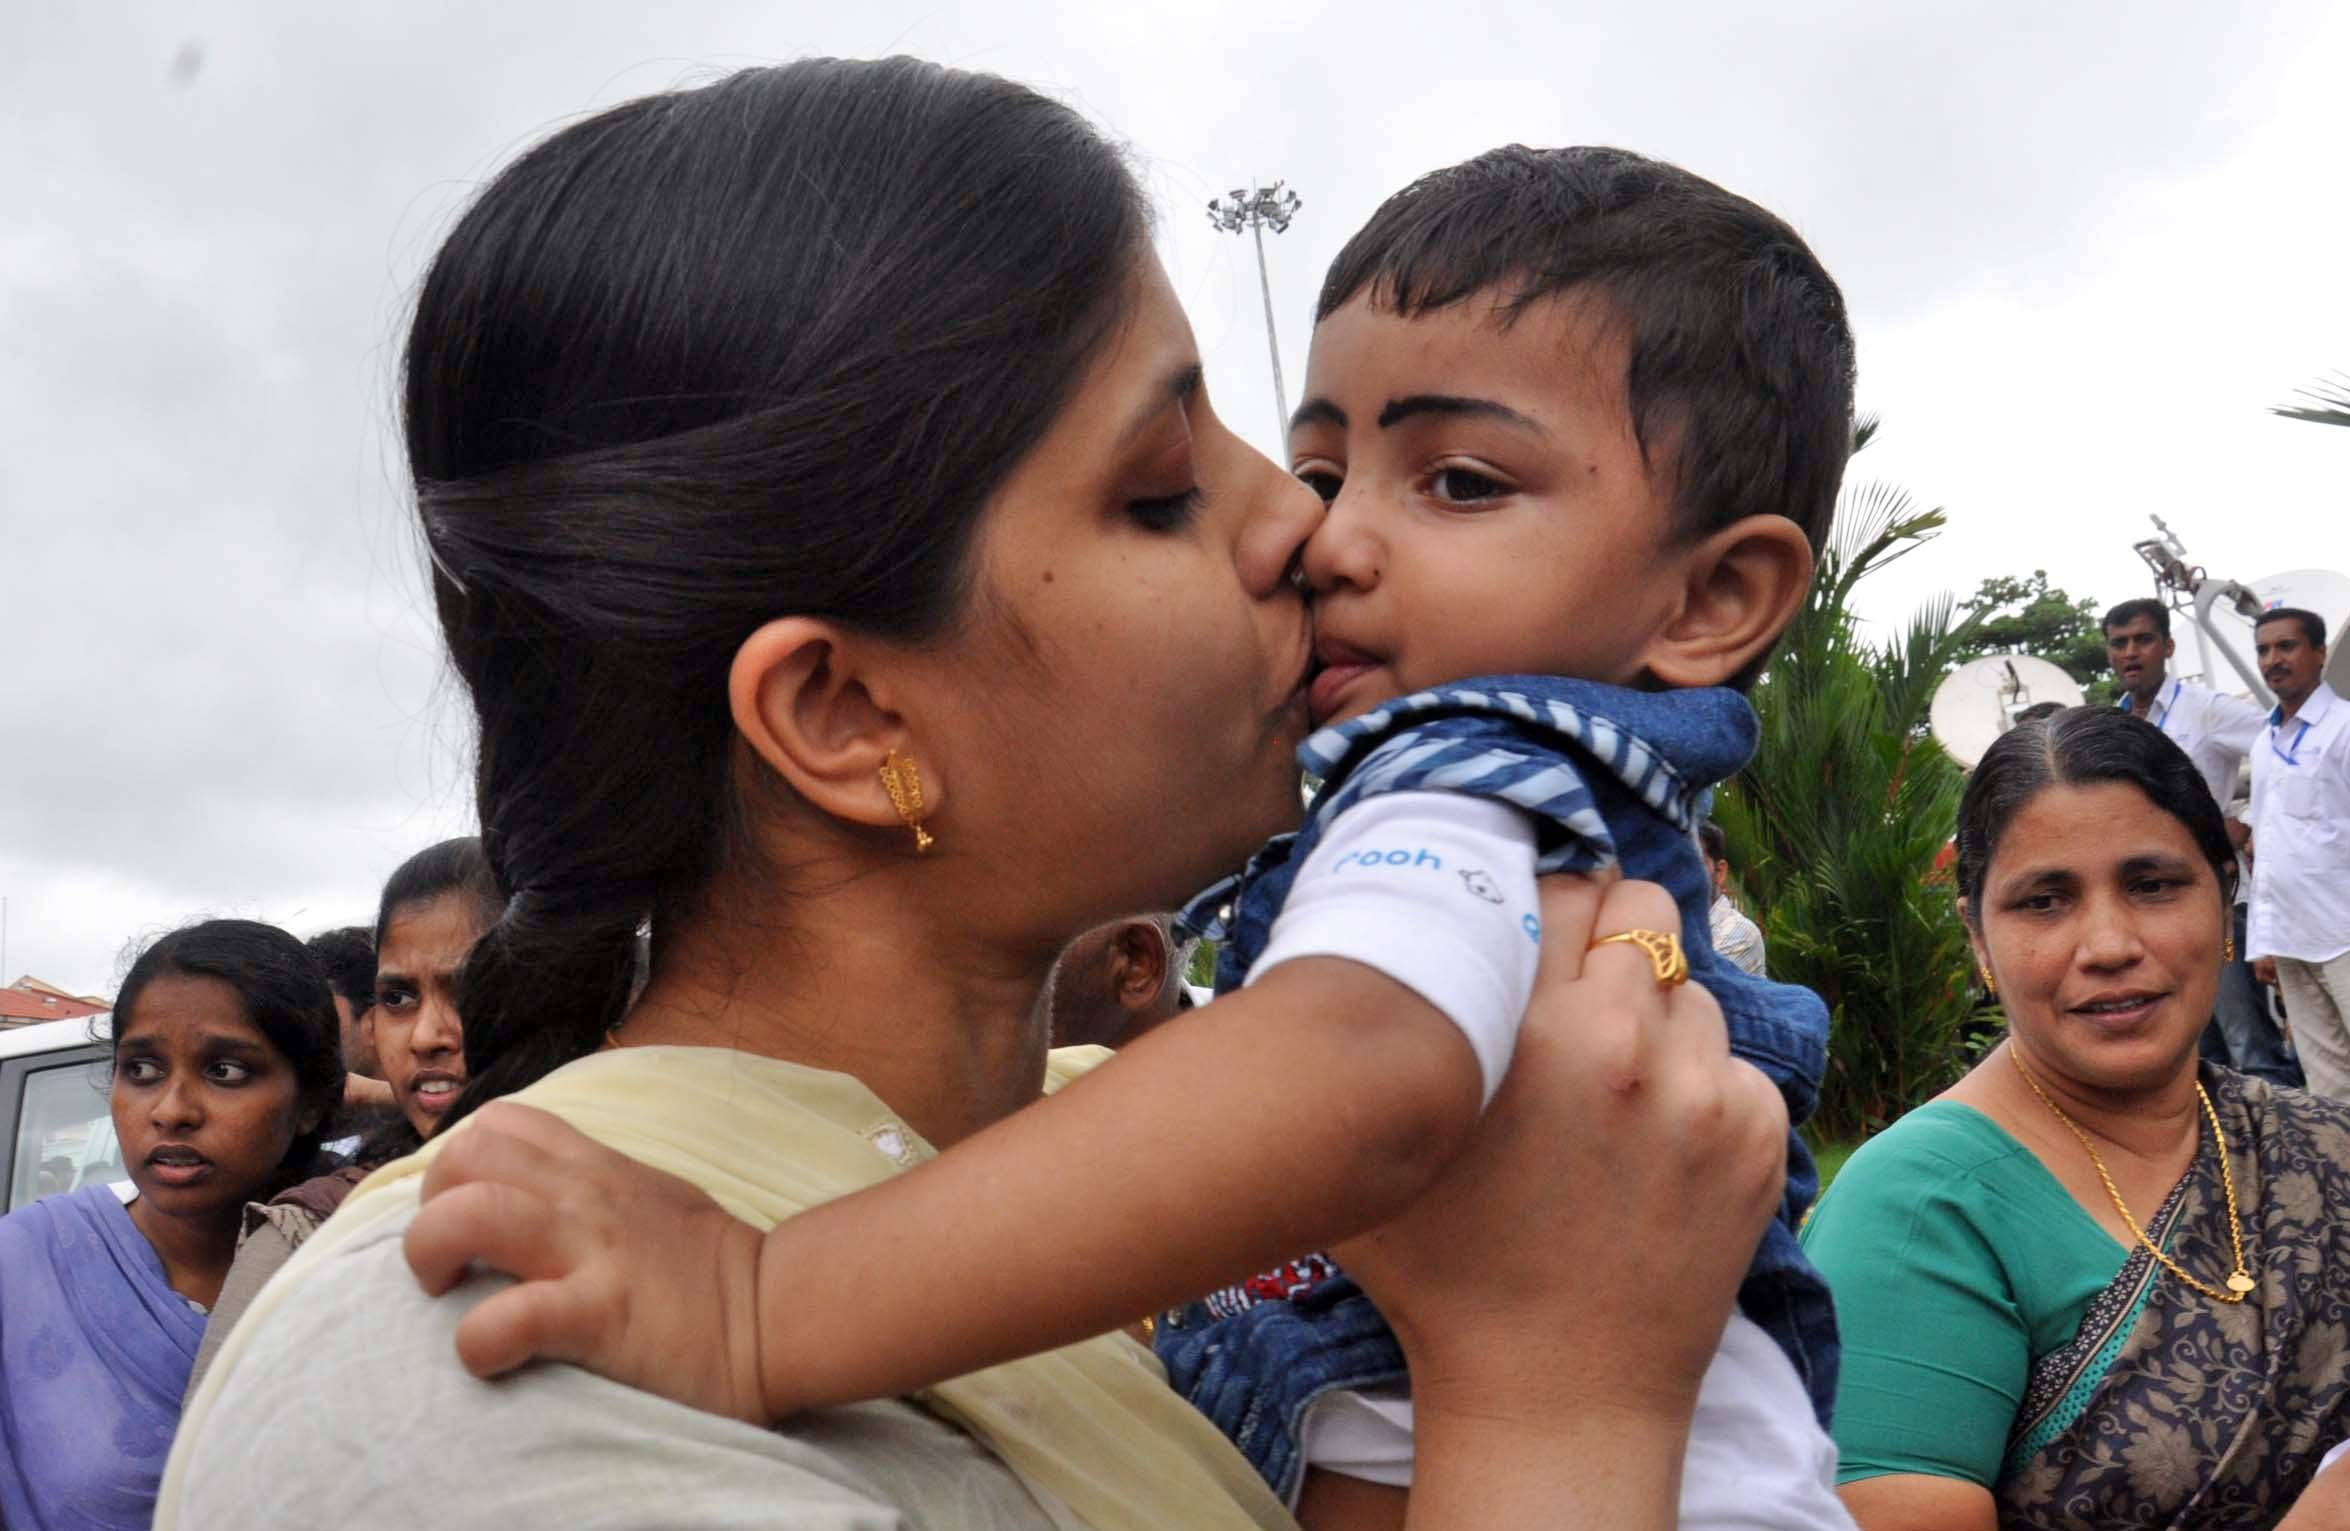 An Indian nurse, who was among 46 nurses stranded in territory held by Islamic extremists in Iraq, kisses her nephew upon arrival at the airport in Kochi, India, Saturday, July 5. The nurses who had been holed up for more than a week in Tikrit, returned home to southern India on Saturday aboard a special flight, officials said.